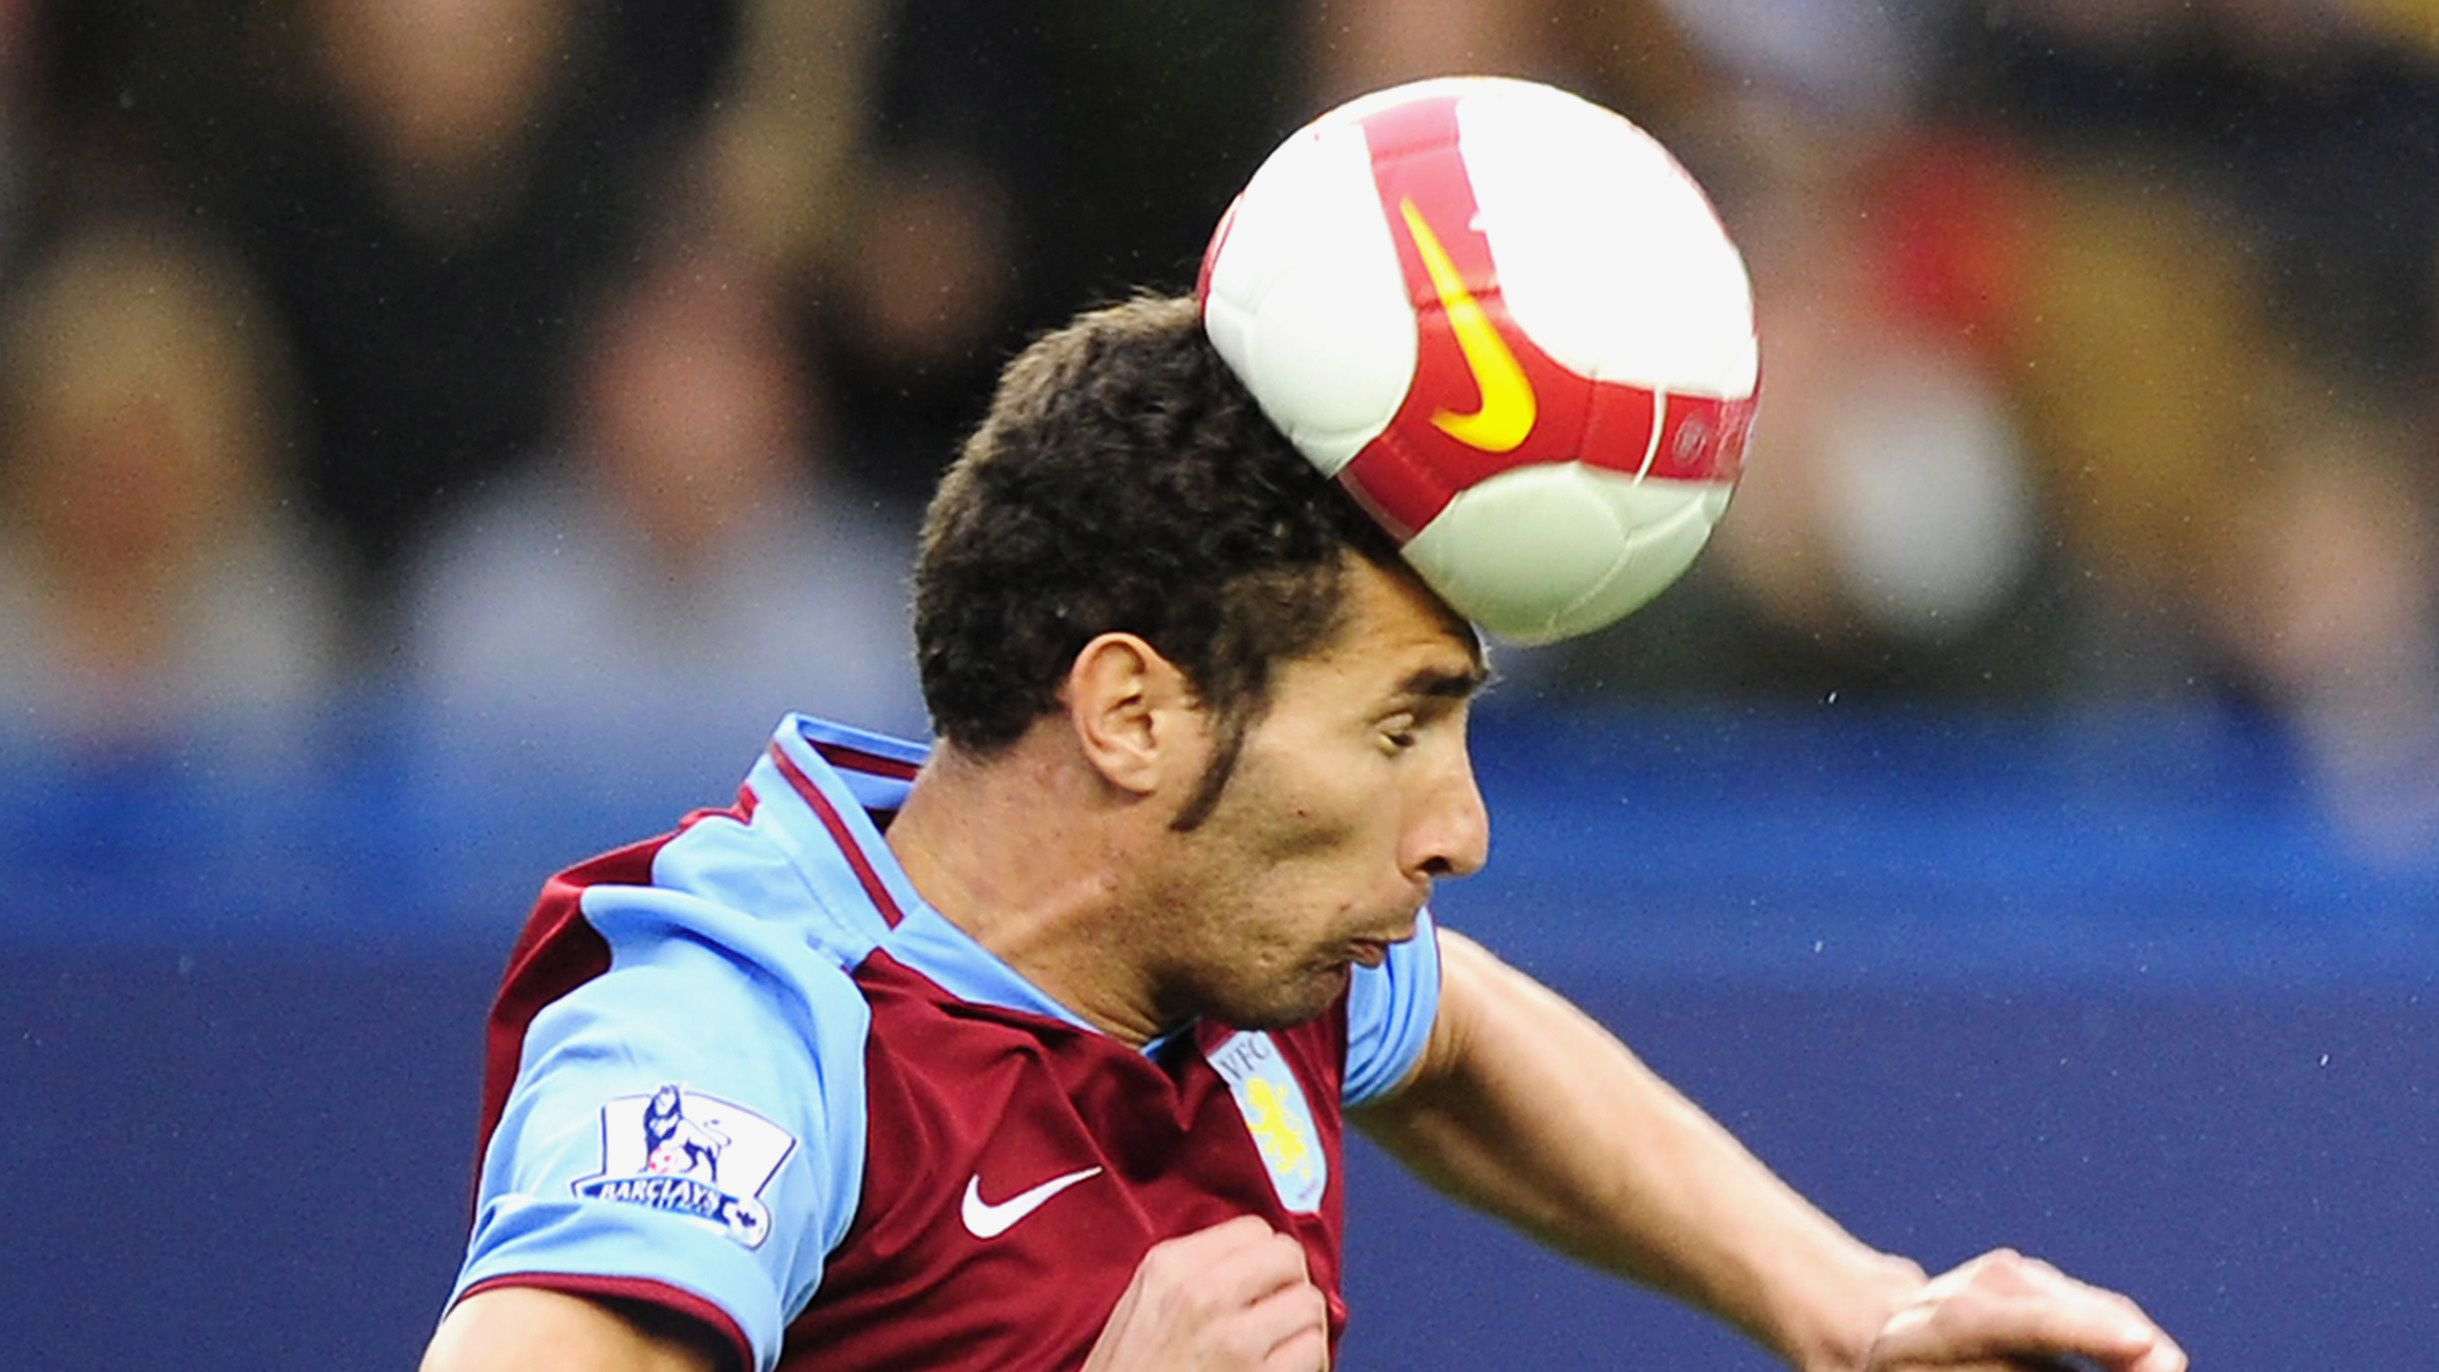 Aston Villa's Carlos Cuellar heads the ball against Chelsea during their English Premier League soccer match at Stamford Bridge in London October 5, 2008.